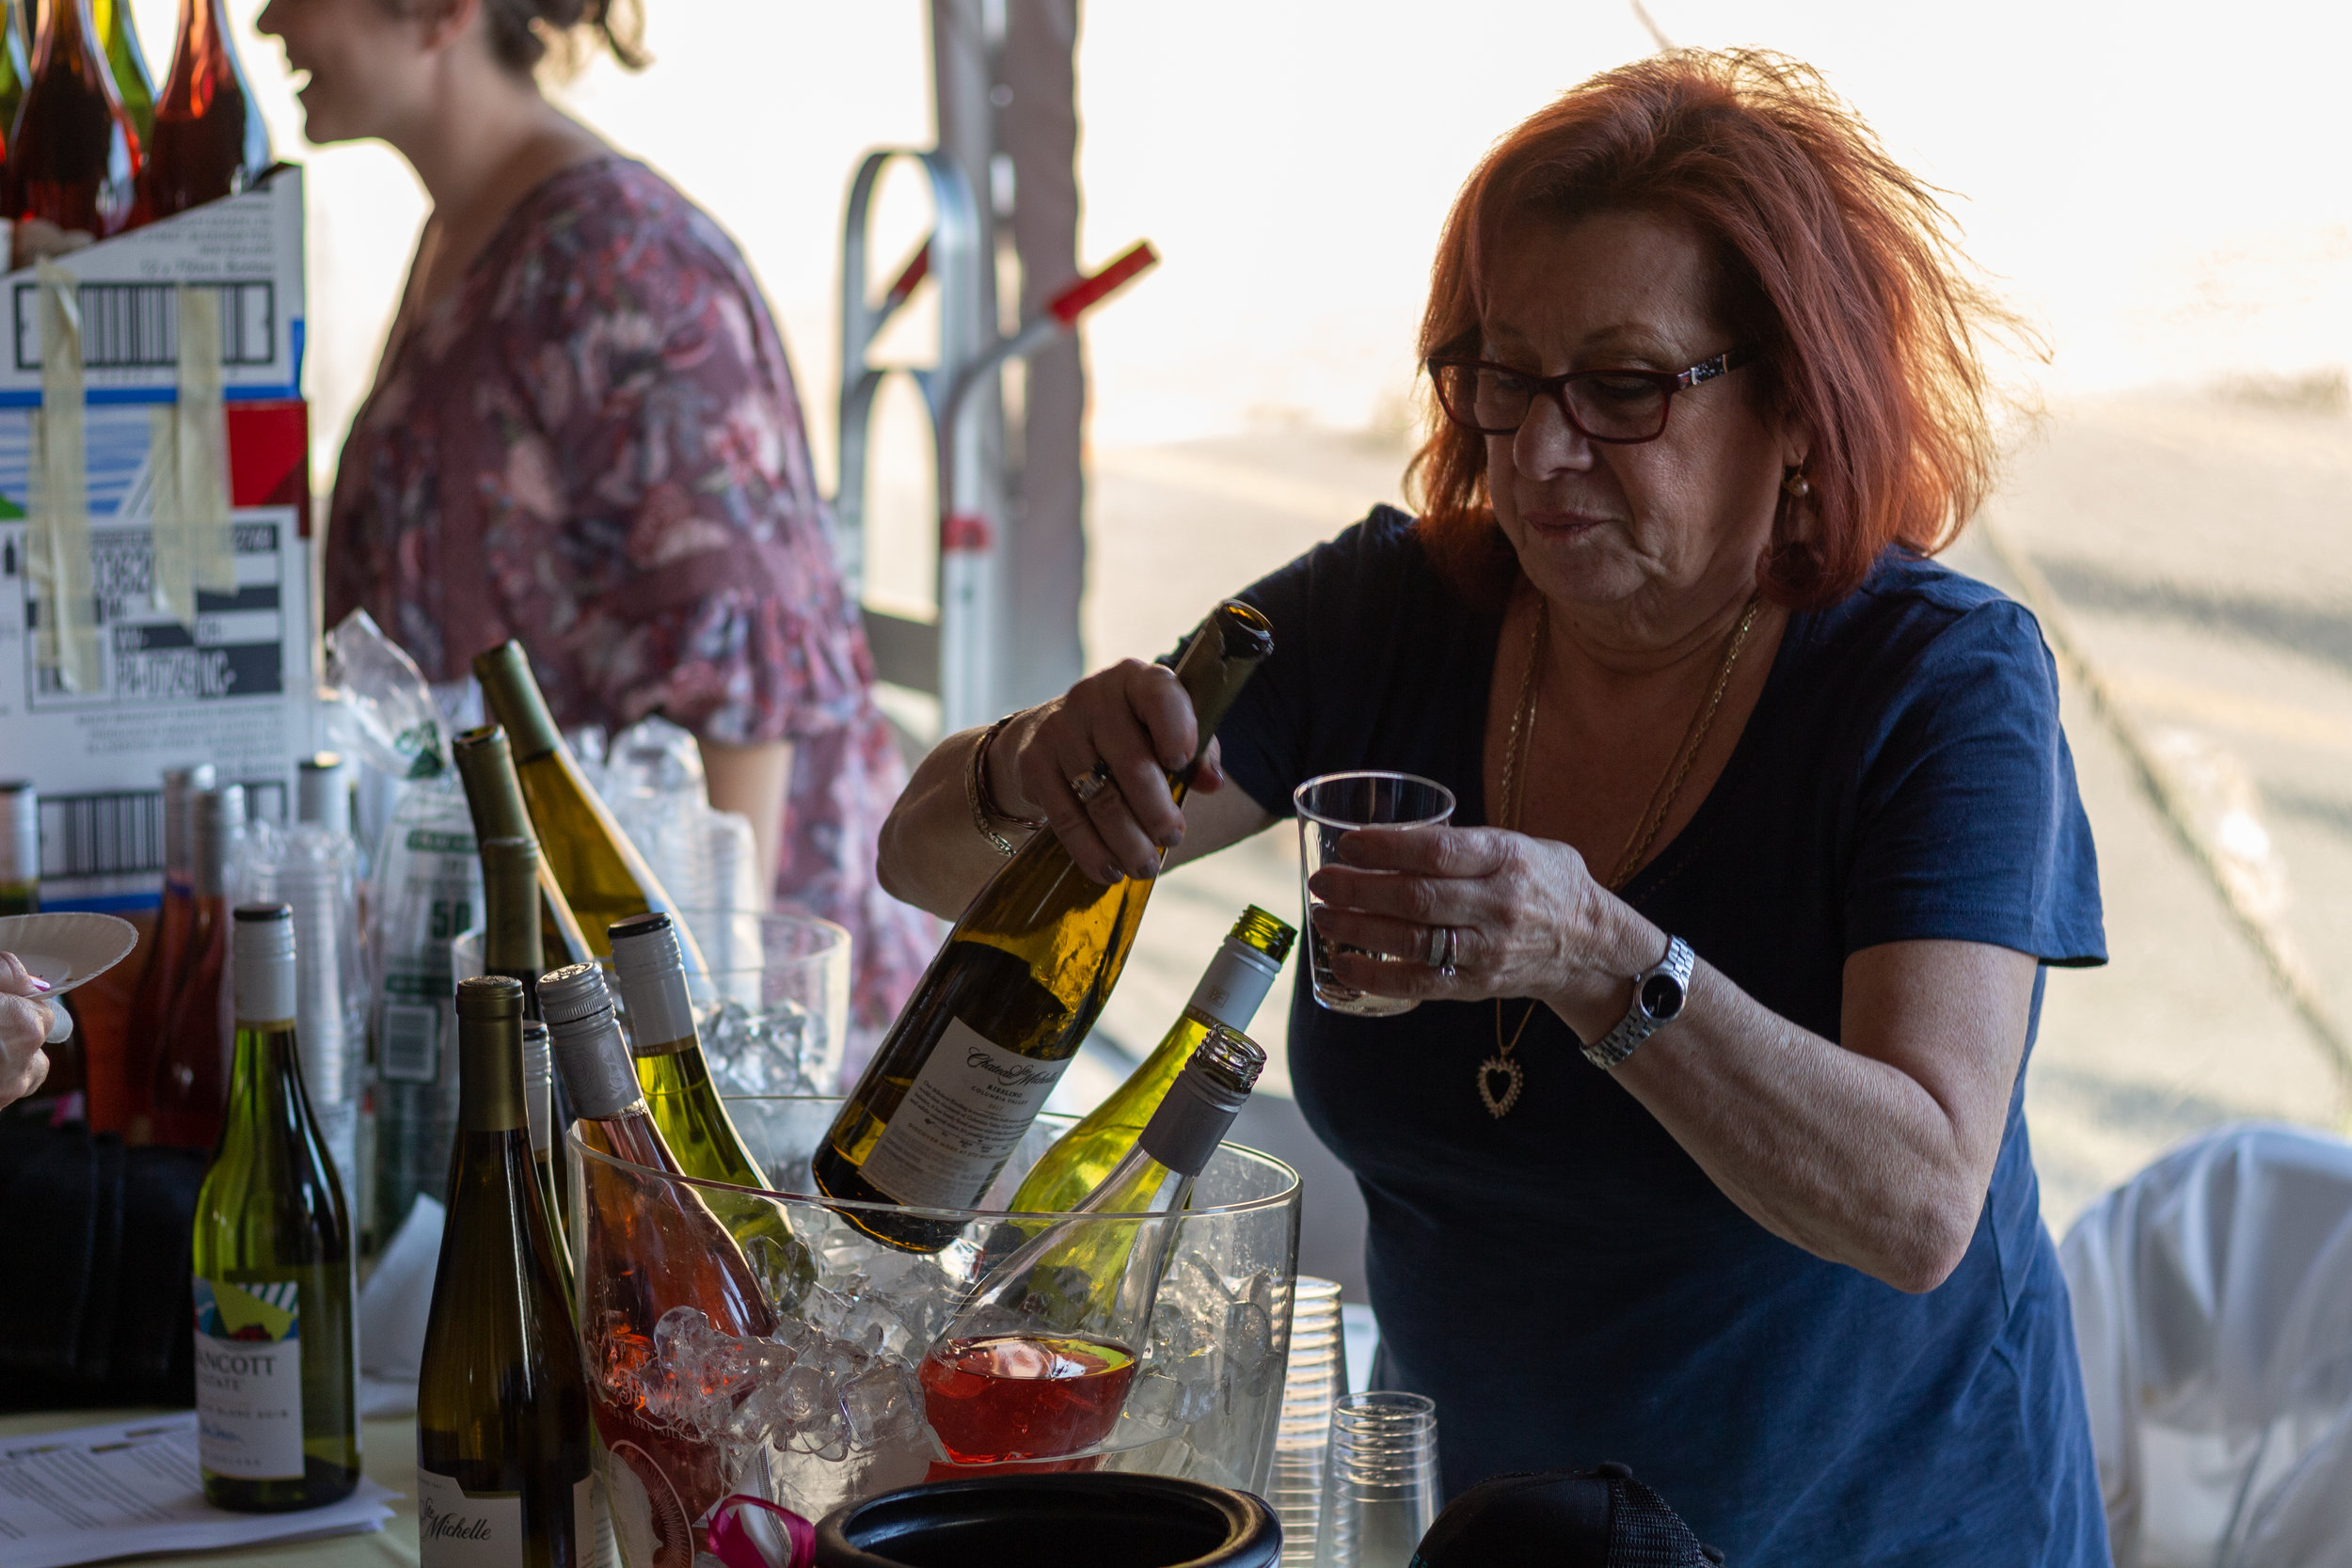 Alcohol and other beverages were also served at the Taste of Sunnyside.